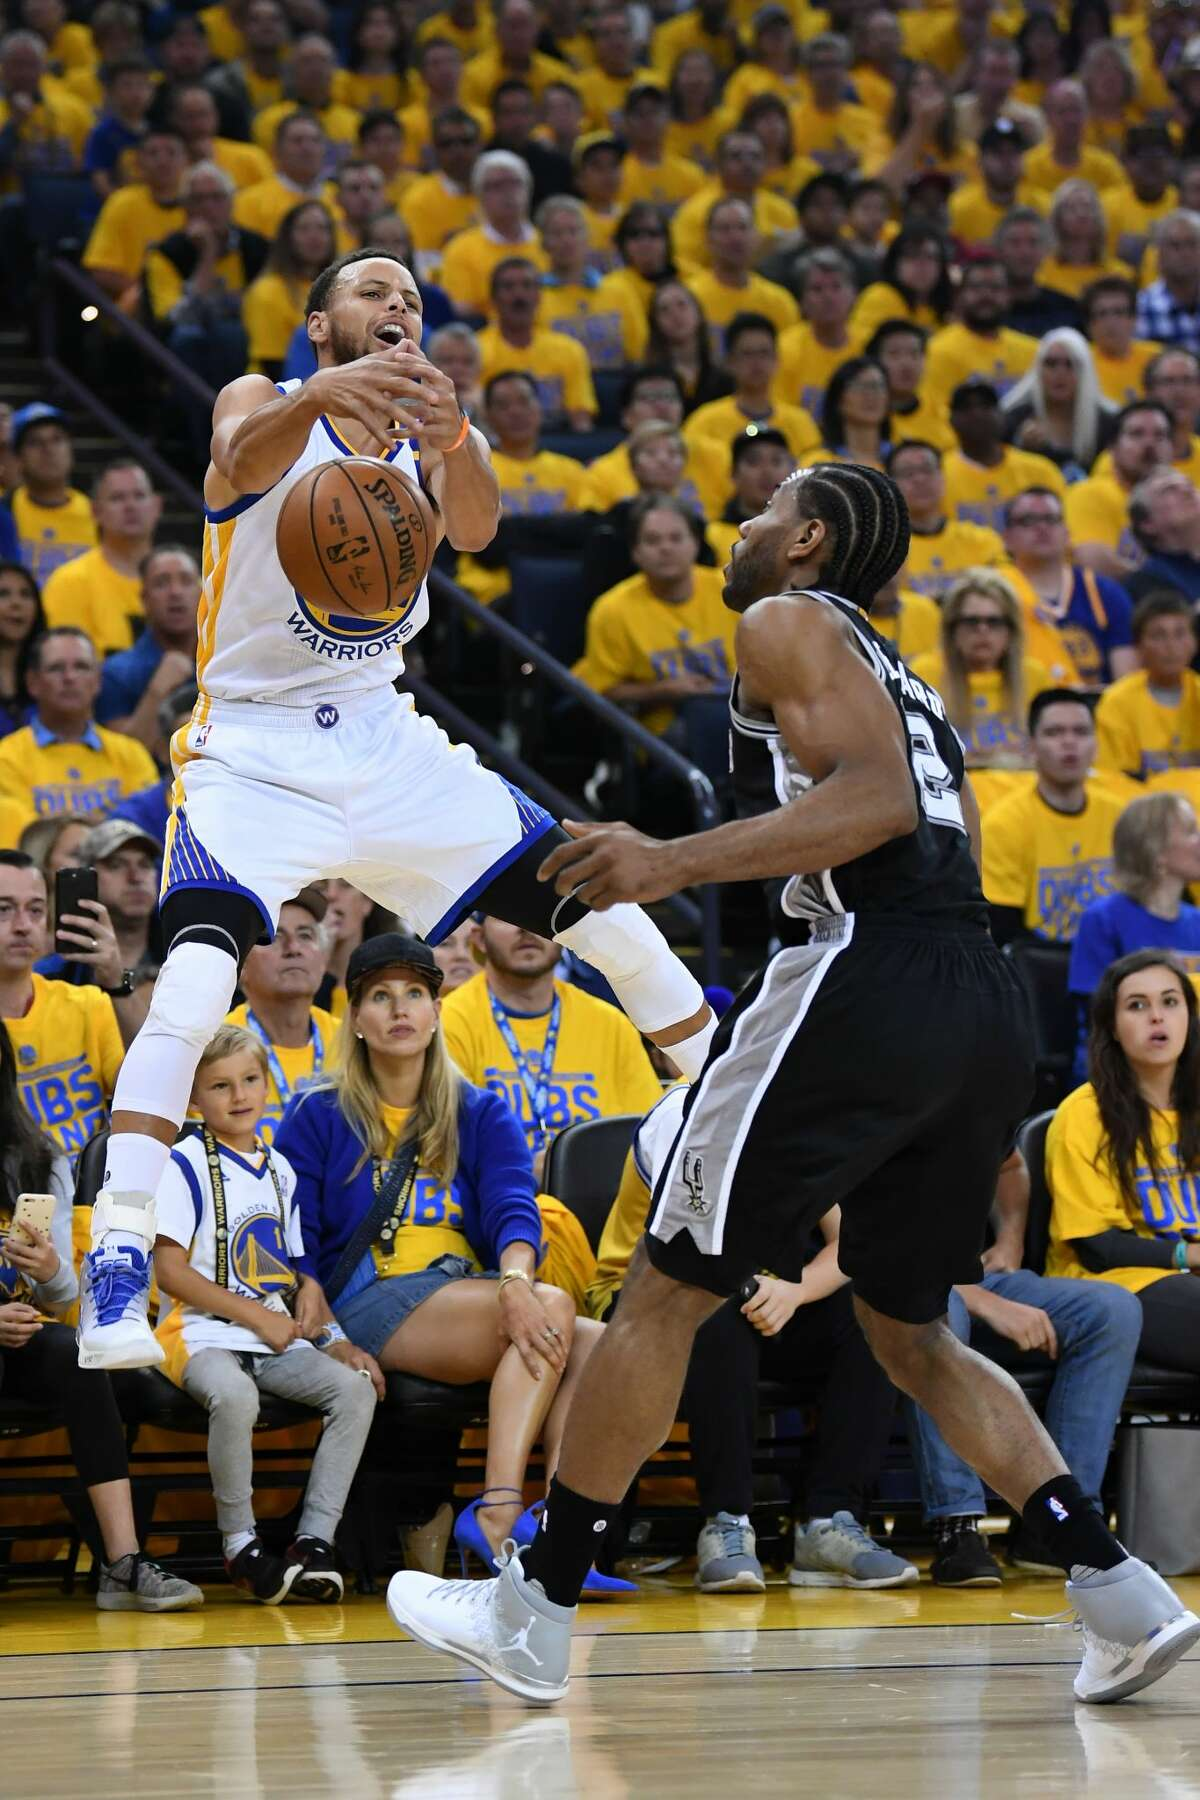 OAKLAND, CA - MAY 14: Stephen Curry #30 of the Golden State Warriors loses control of the ball during Game One of the NBA Western Conference Finals against the San Antonio Spurs at ORACLE Arena on May 14, 2017 in Oakland, California. NOTE TO USER: User expressly acknowledges and agrees that, by downloading and or using this photograph, User is consenting to the terms and conditions of the Getty Images License Agreement. (Photo by Thearon W. Henderson/Getty Images)